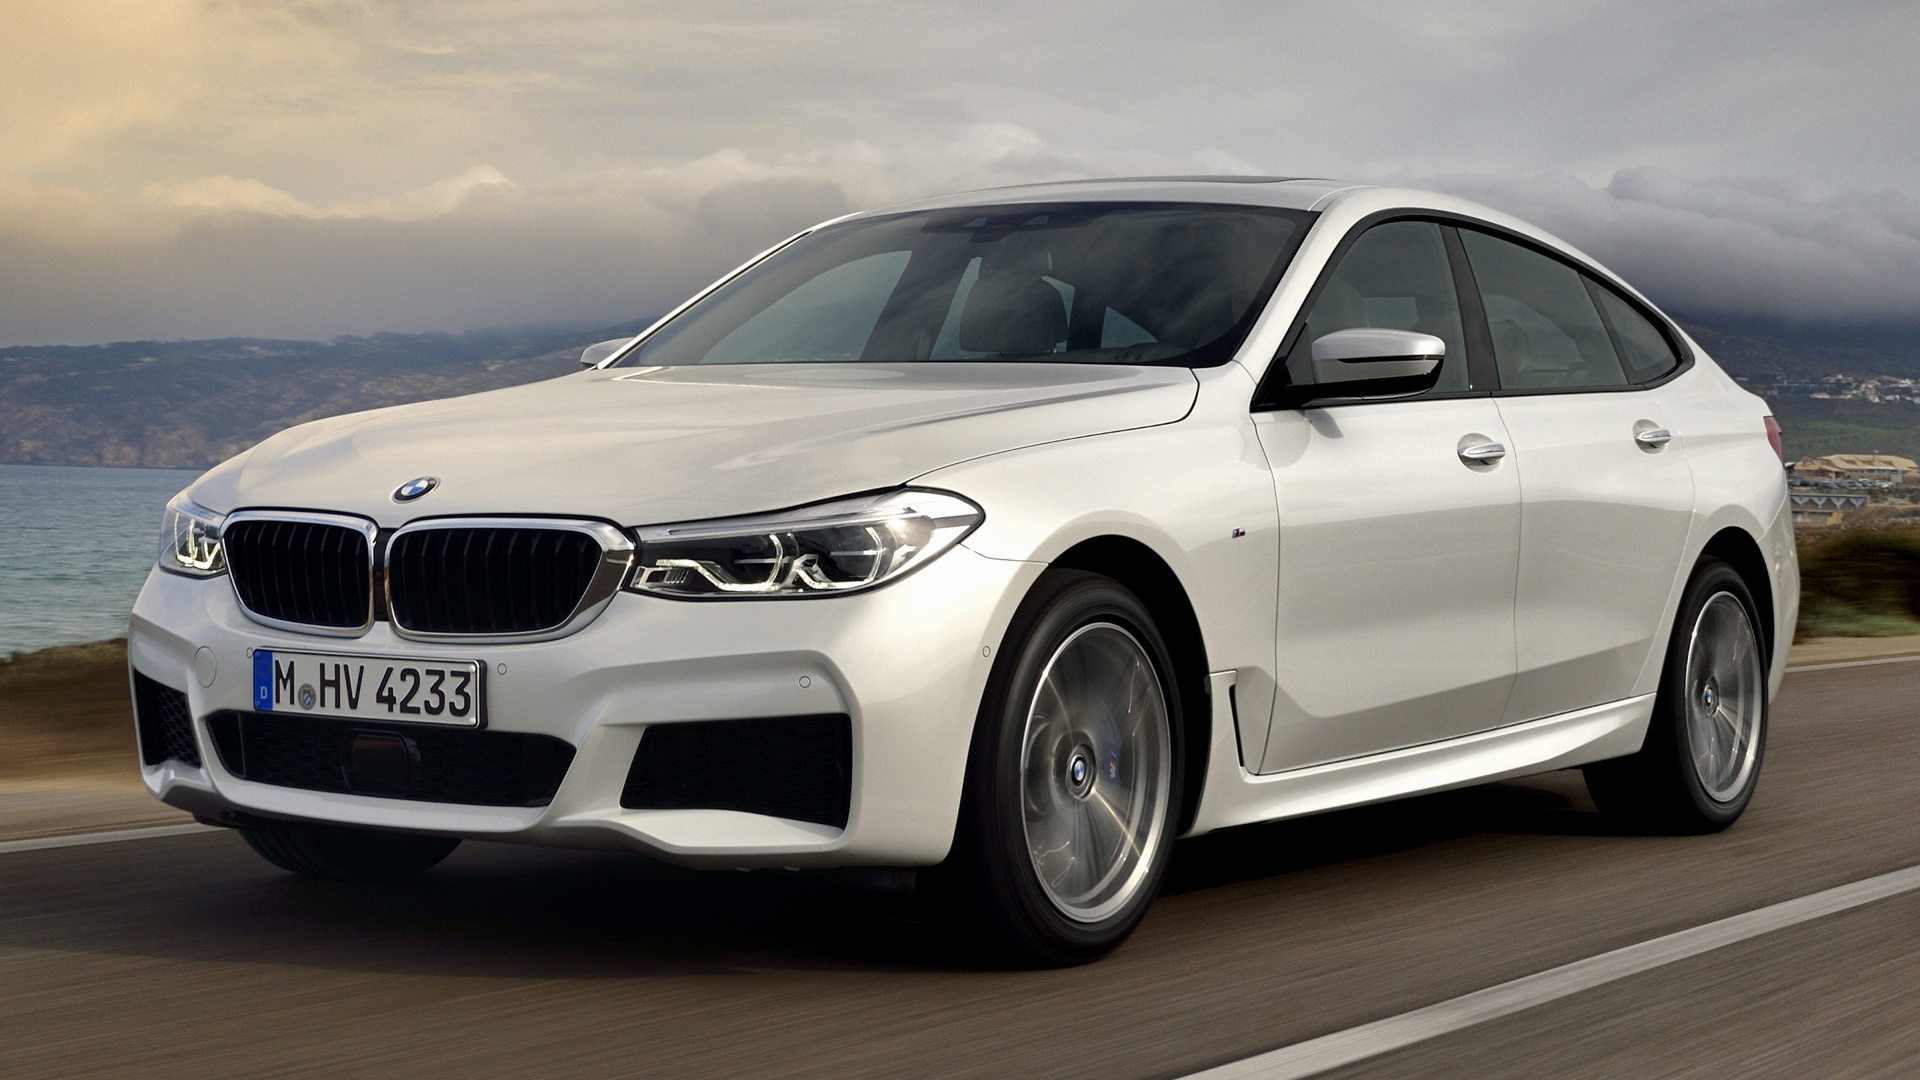 2017 bmw 6 series gran turismo m sport wallpapers and hd images car pixel